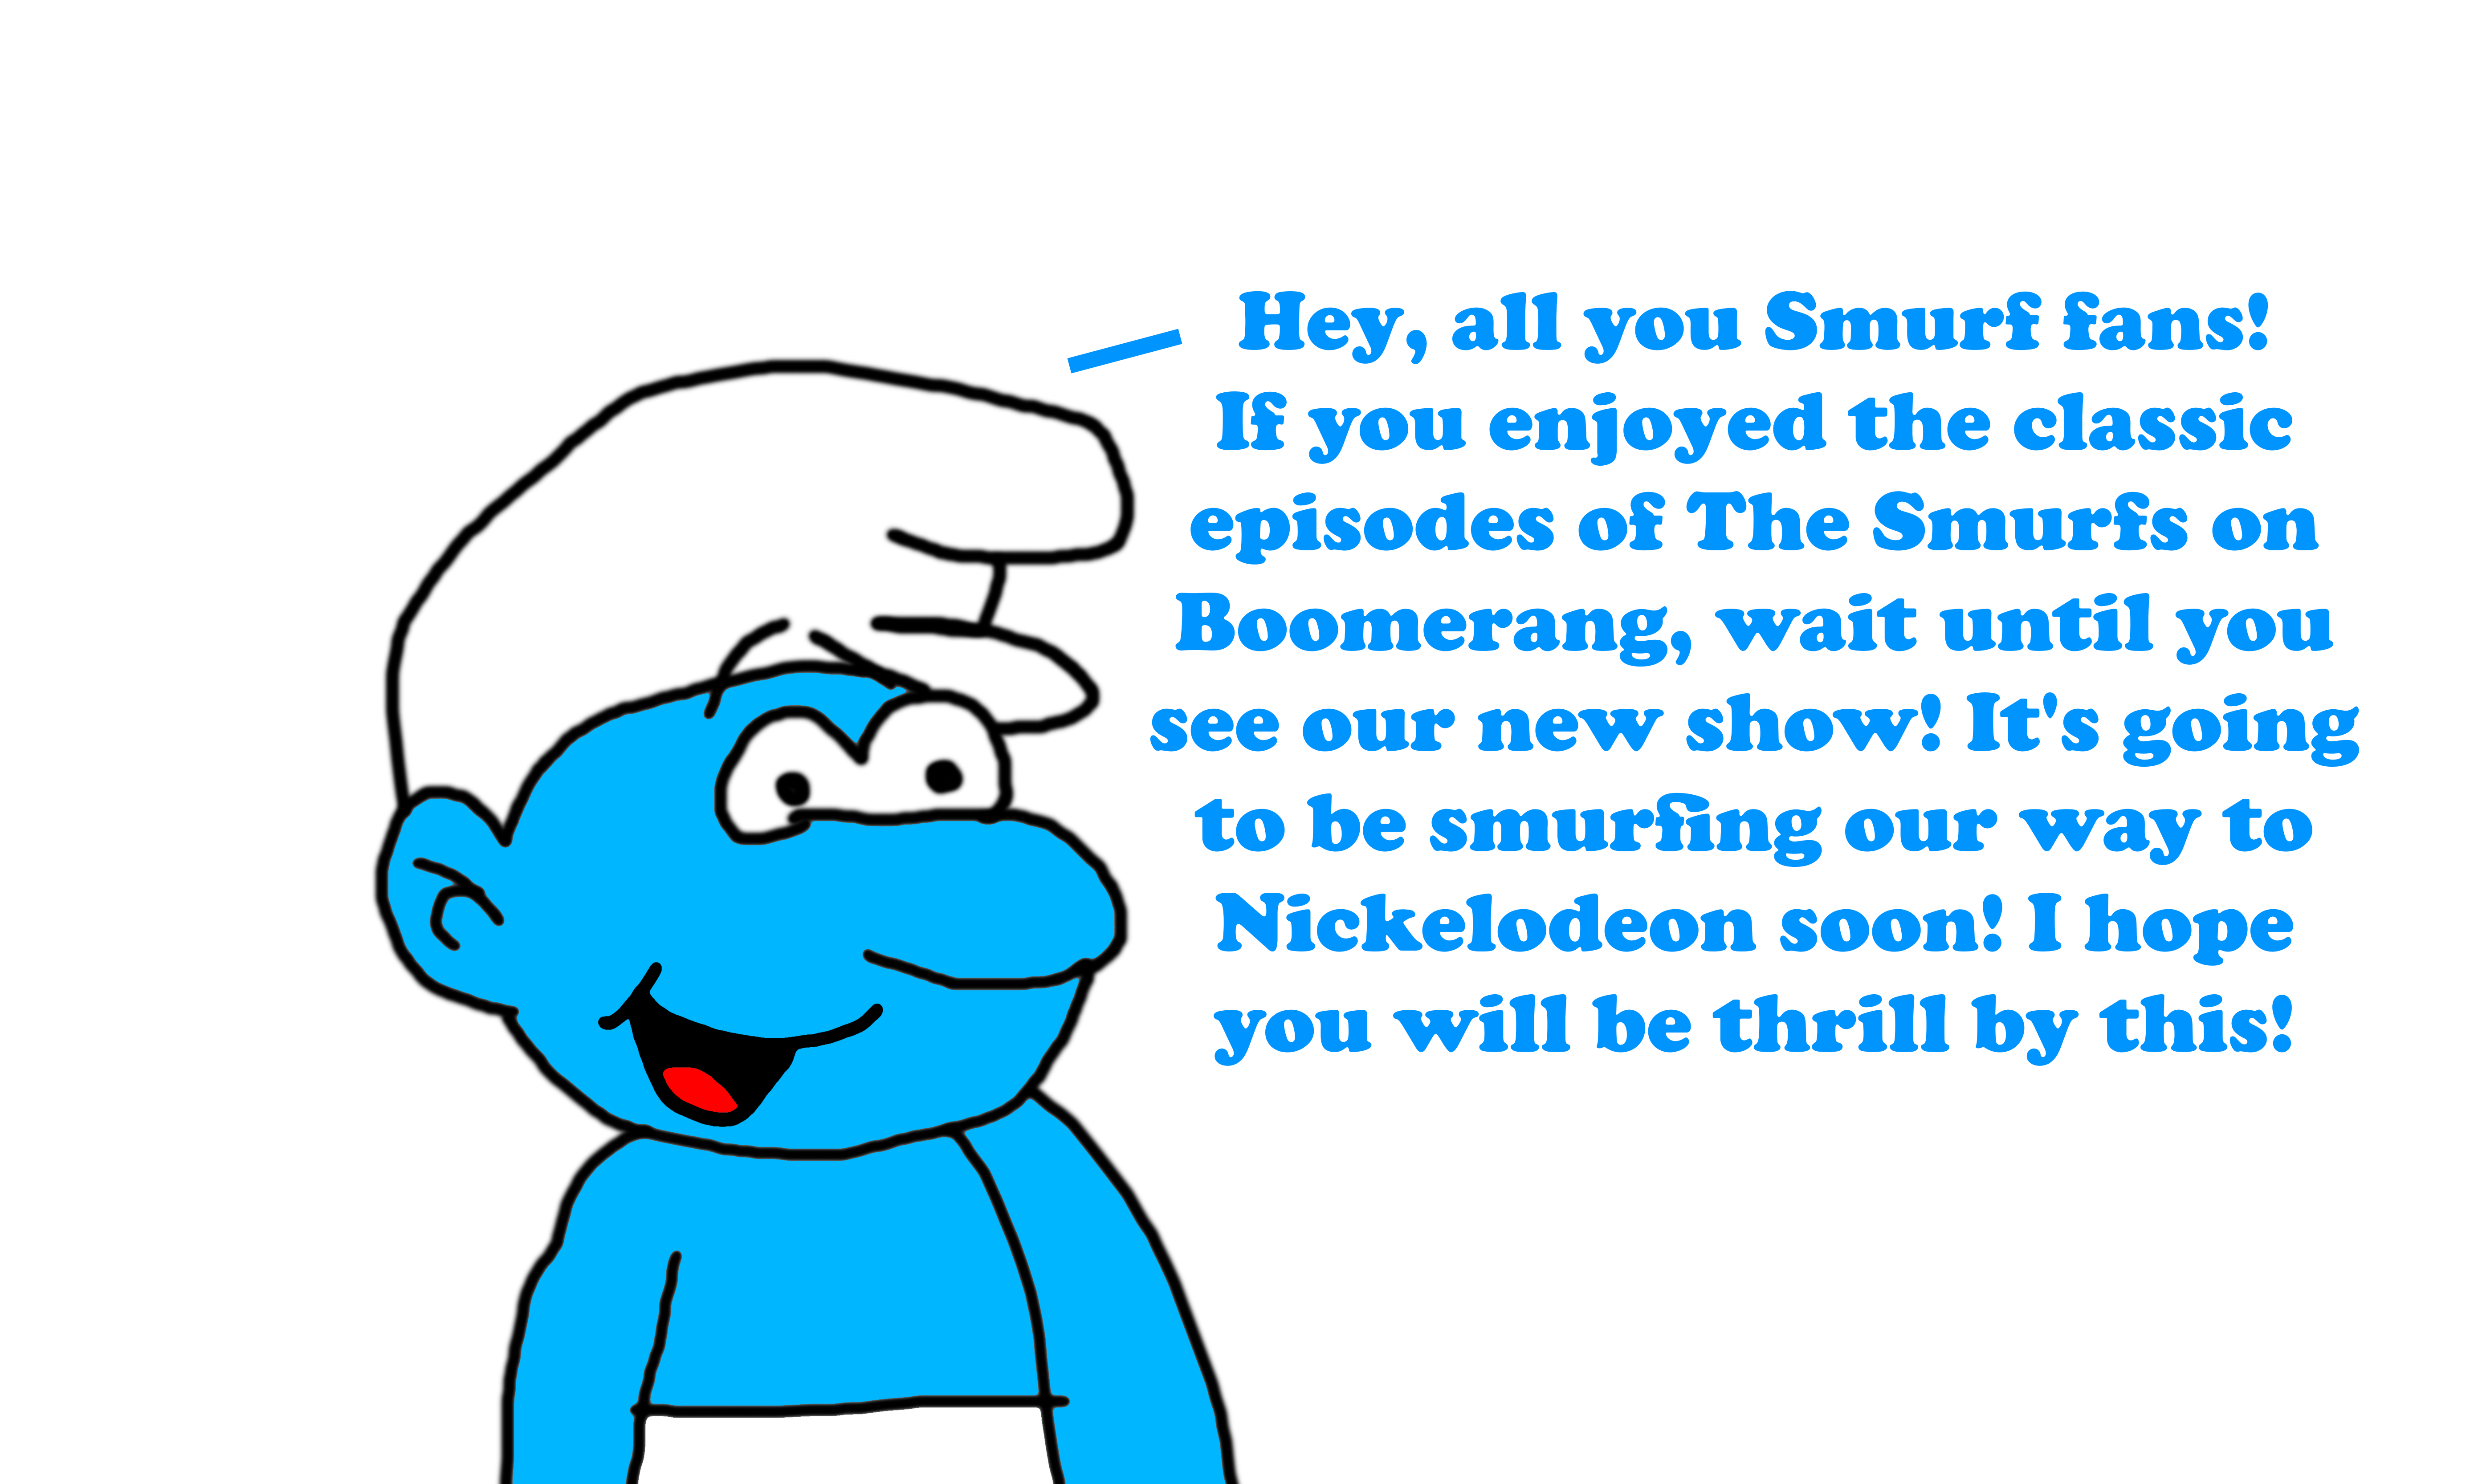 The New Smurfs Series Coming To Nickelodeon 2021 By Mjegameandcomicfan89 On Deviantart